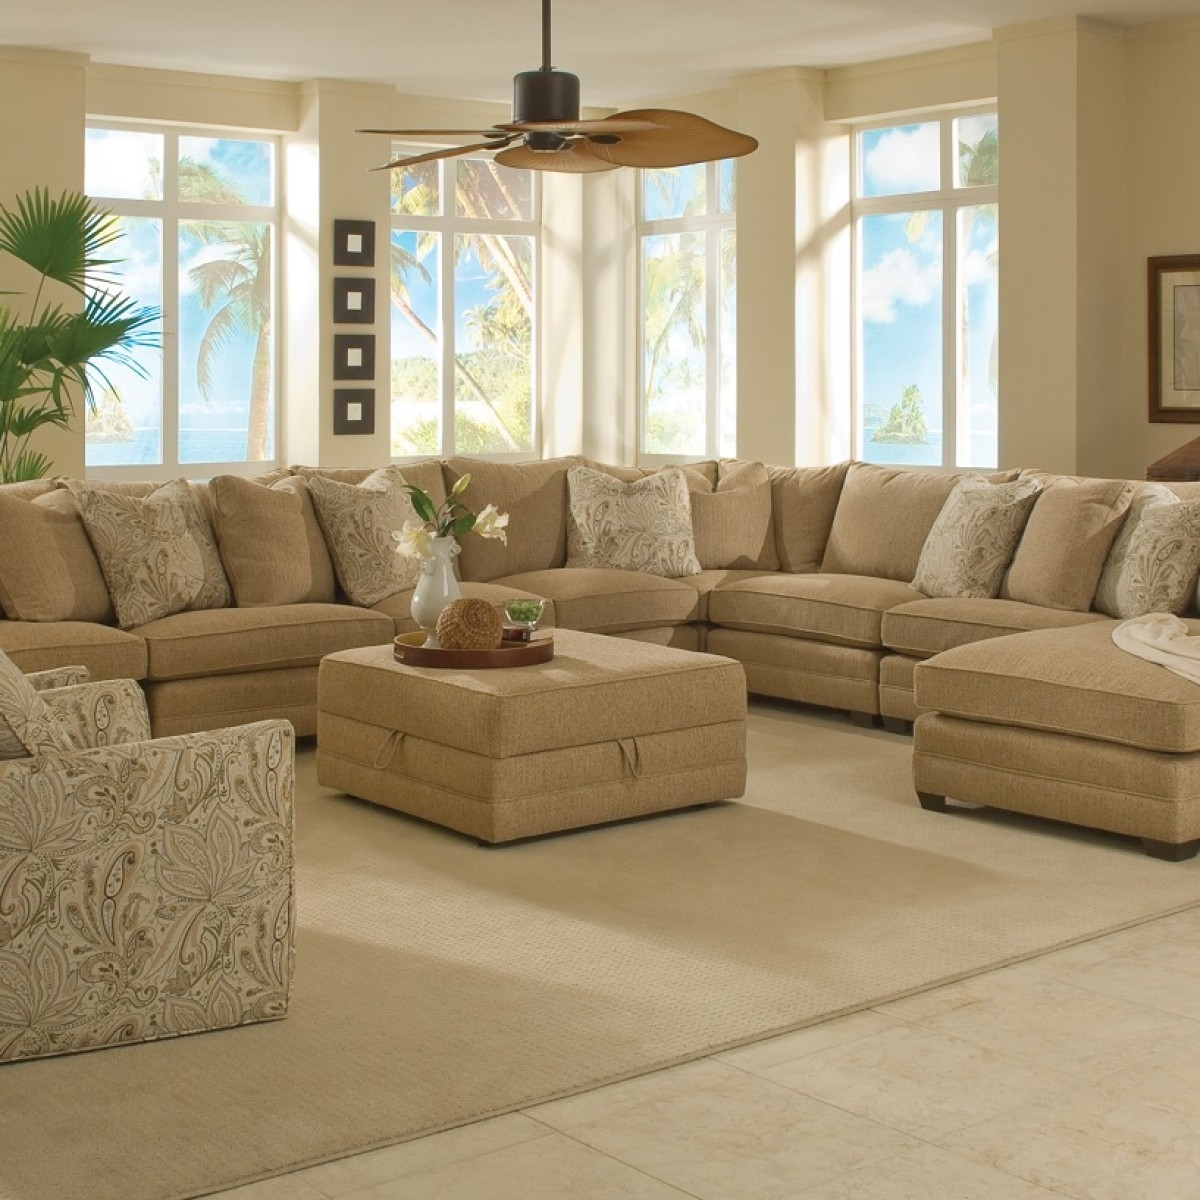 Big Sofa In A Small Room 12 Photo Of Extra Large Sectional Sofas